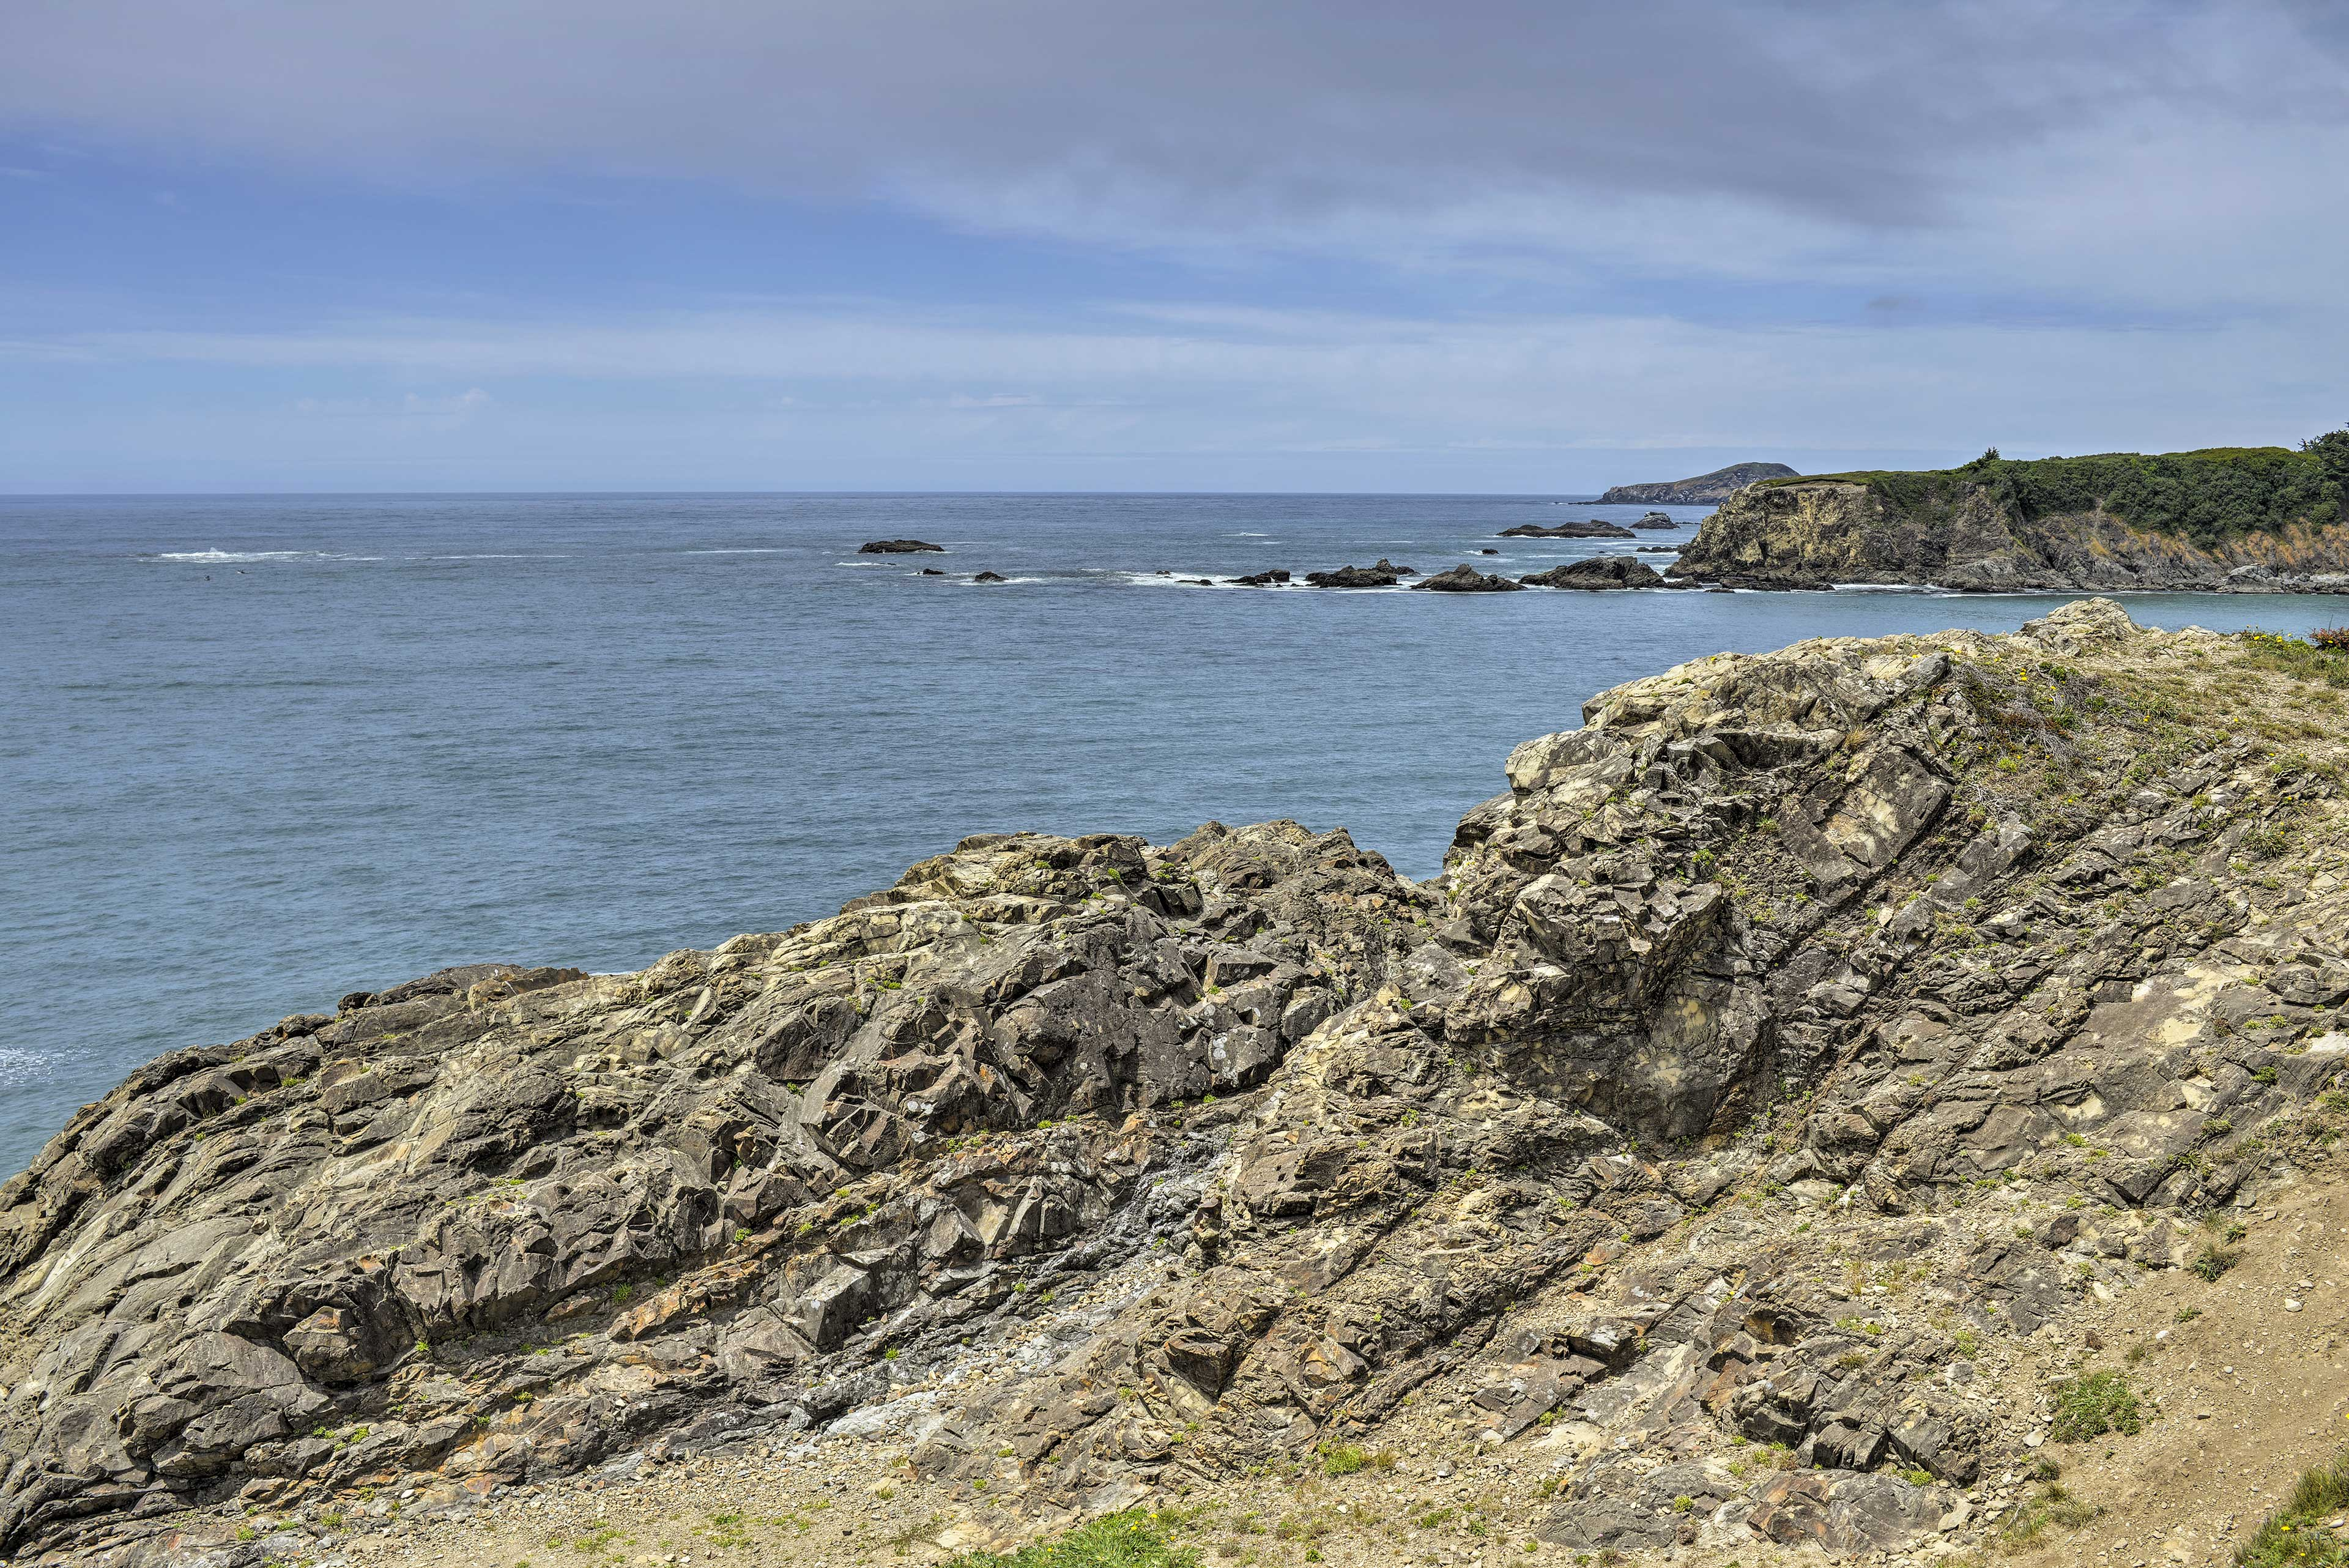 Stroll down the street to find views of Yellow, Mussel, and Hump Rock!